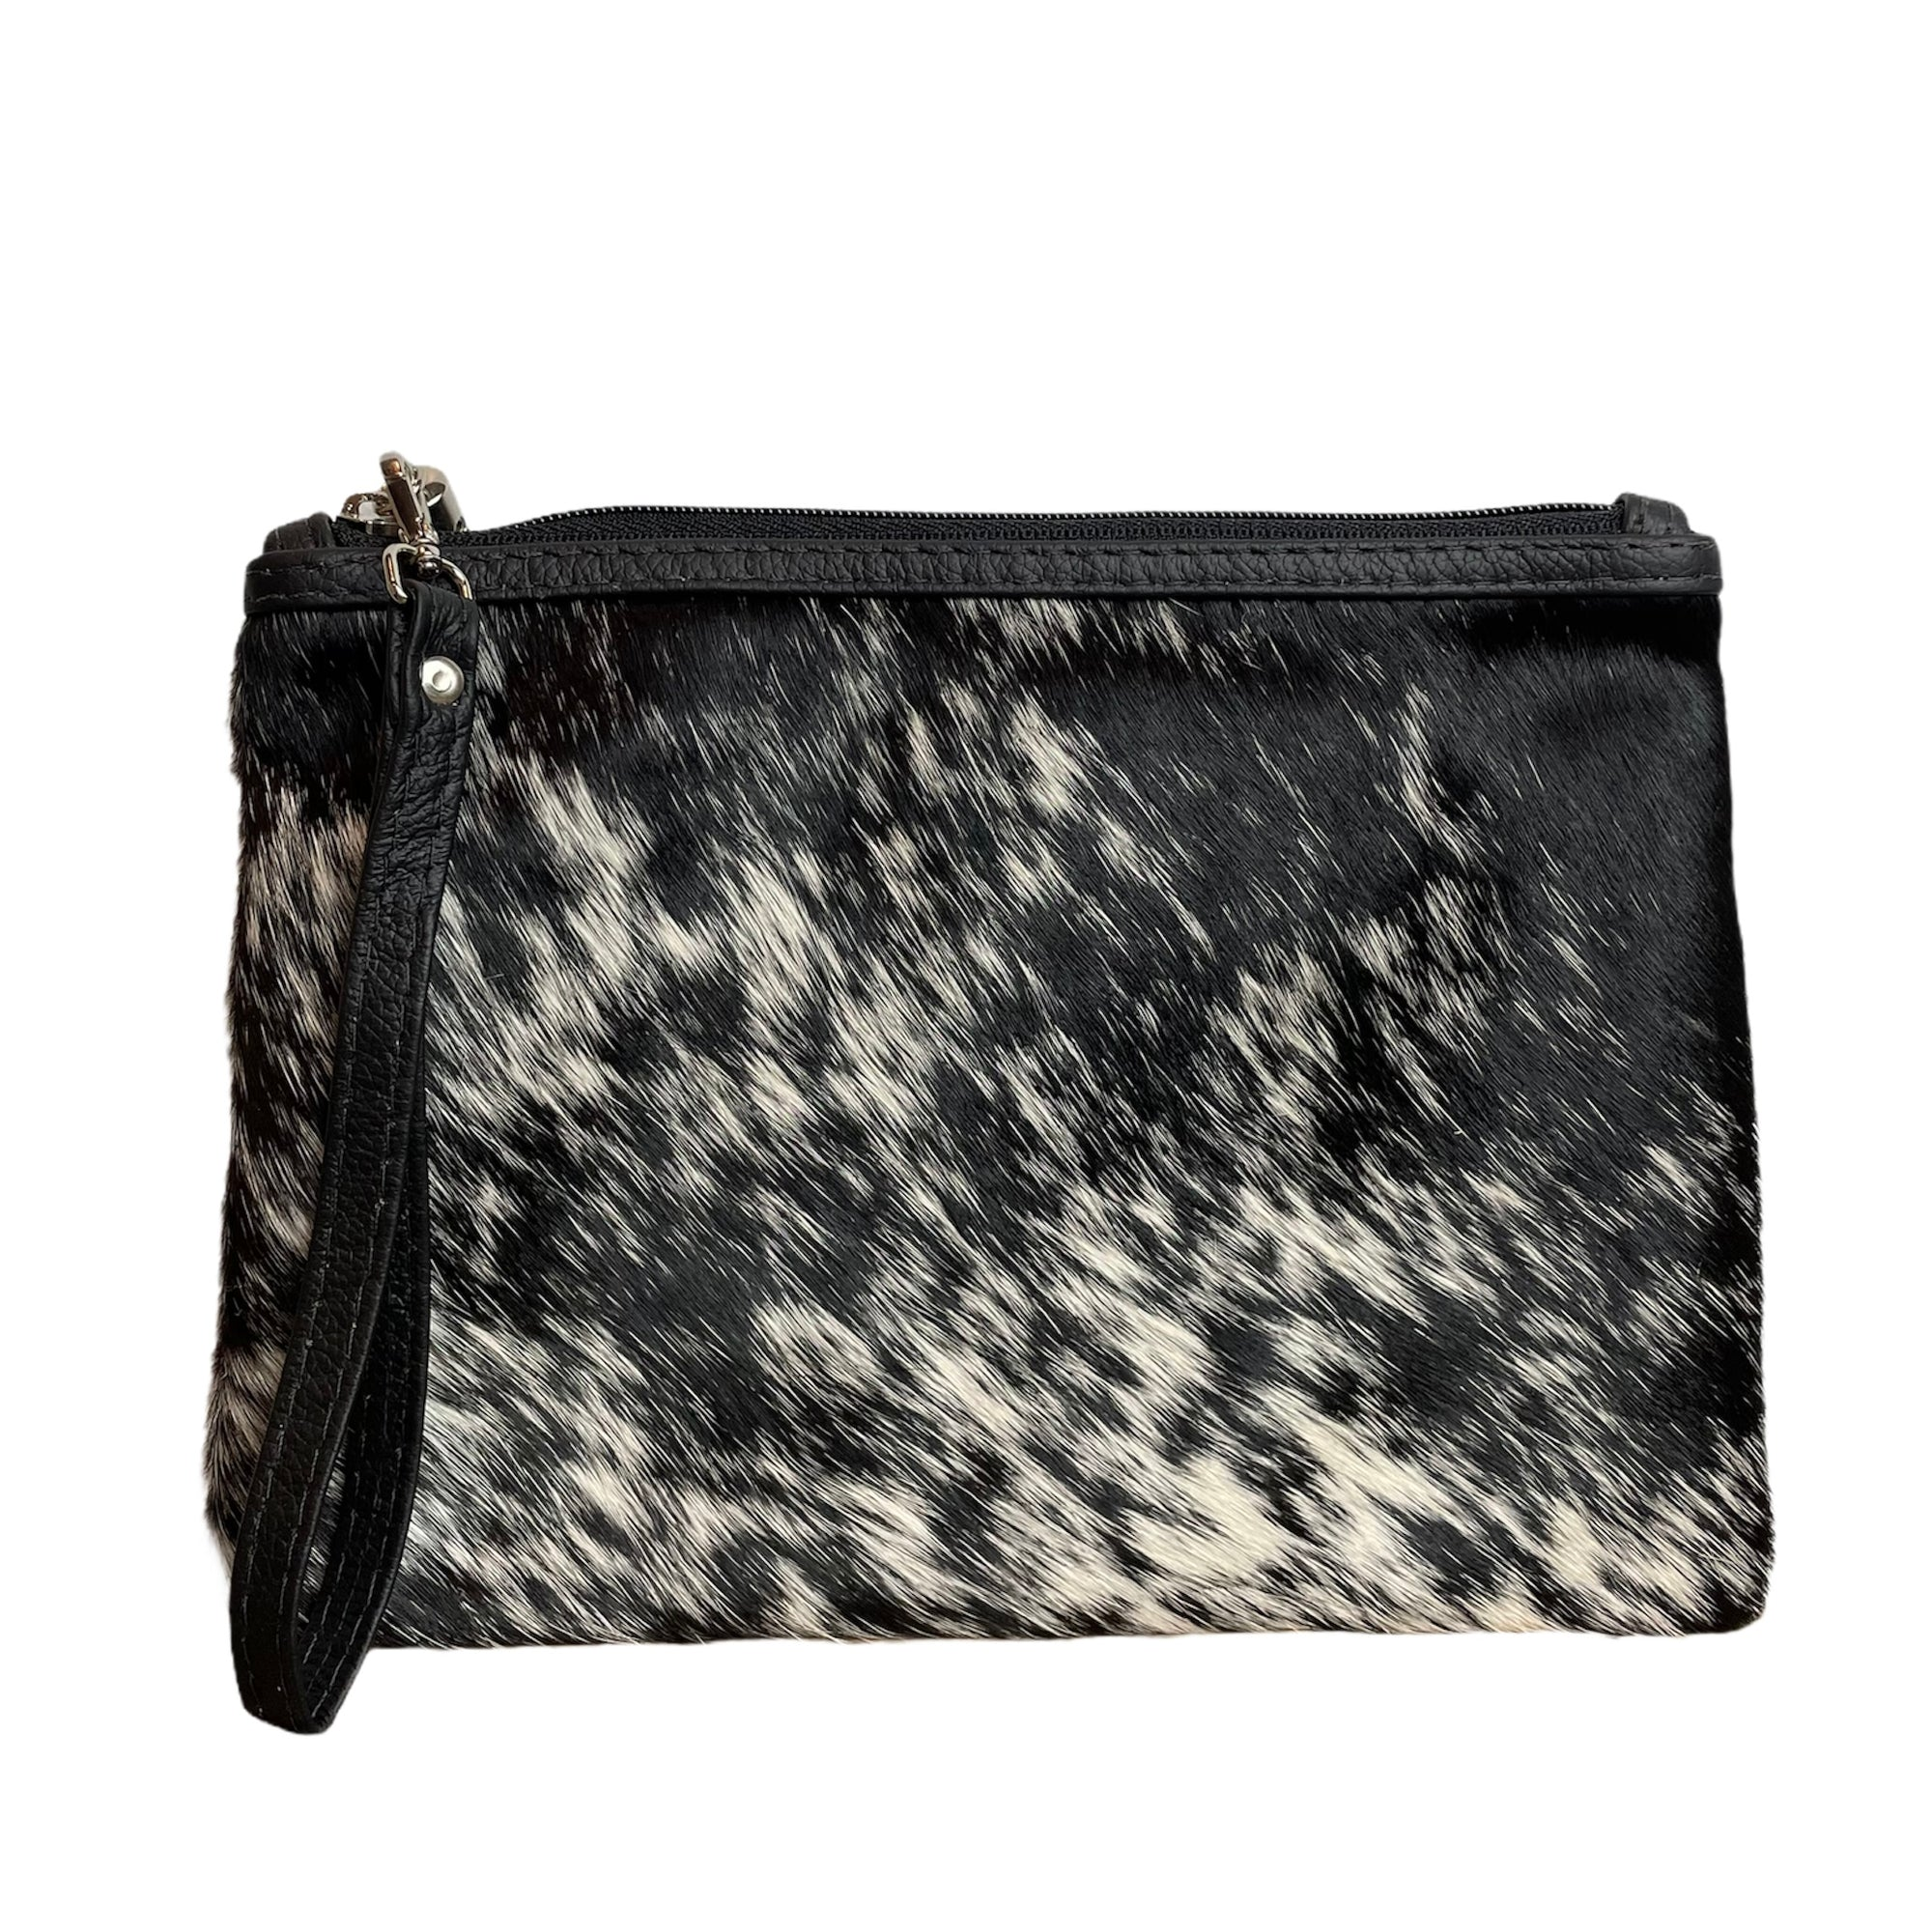 COWHIDE EVERYDAY SMALL CLUTCH - BLACK + WHITE SPECKLE. Izel designs